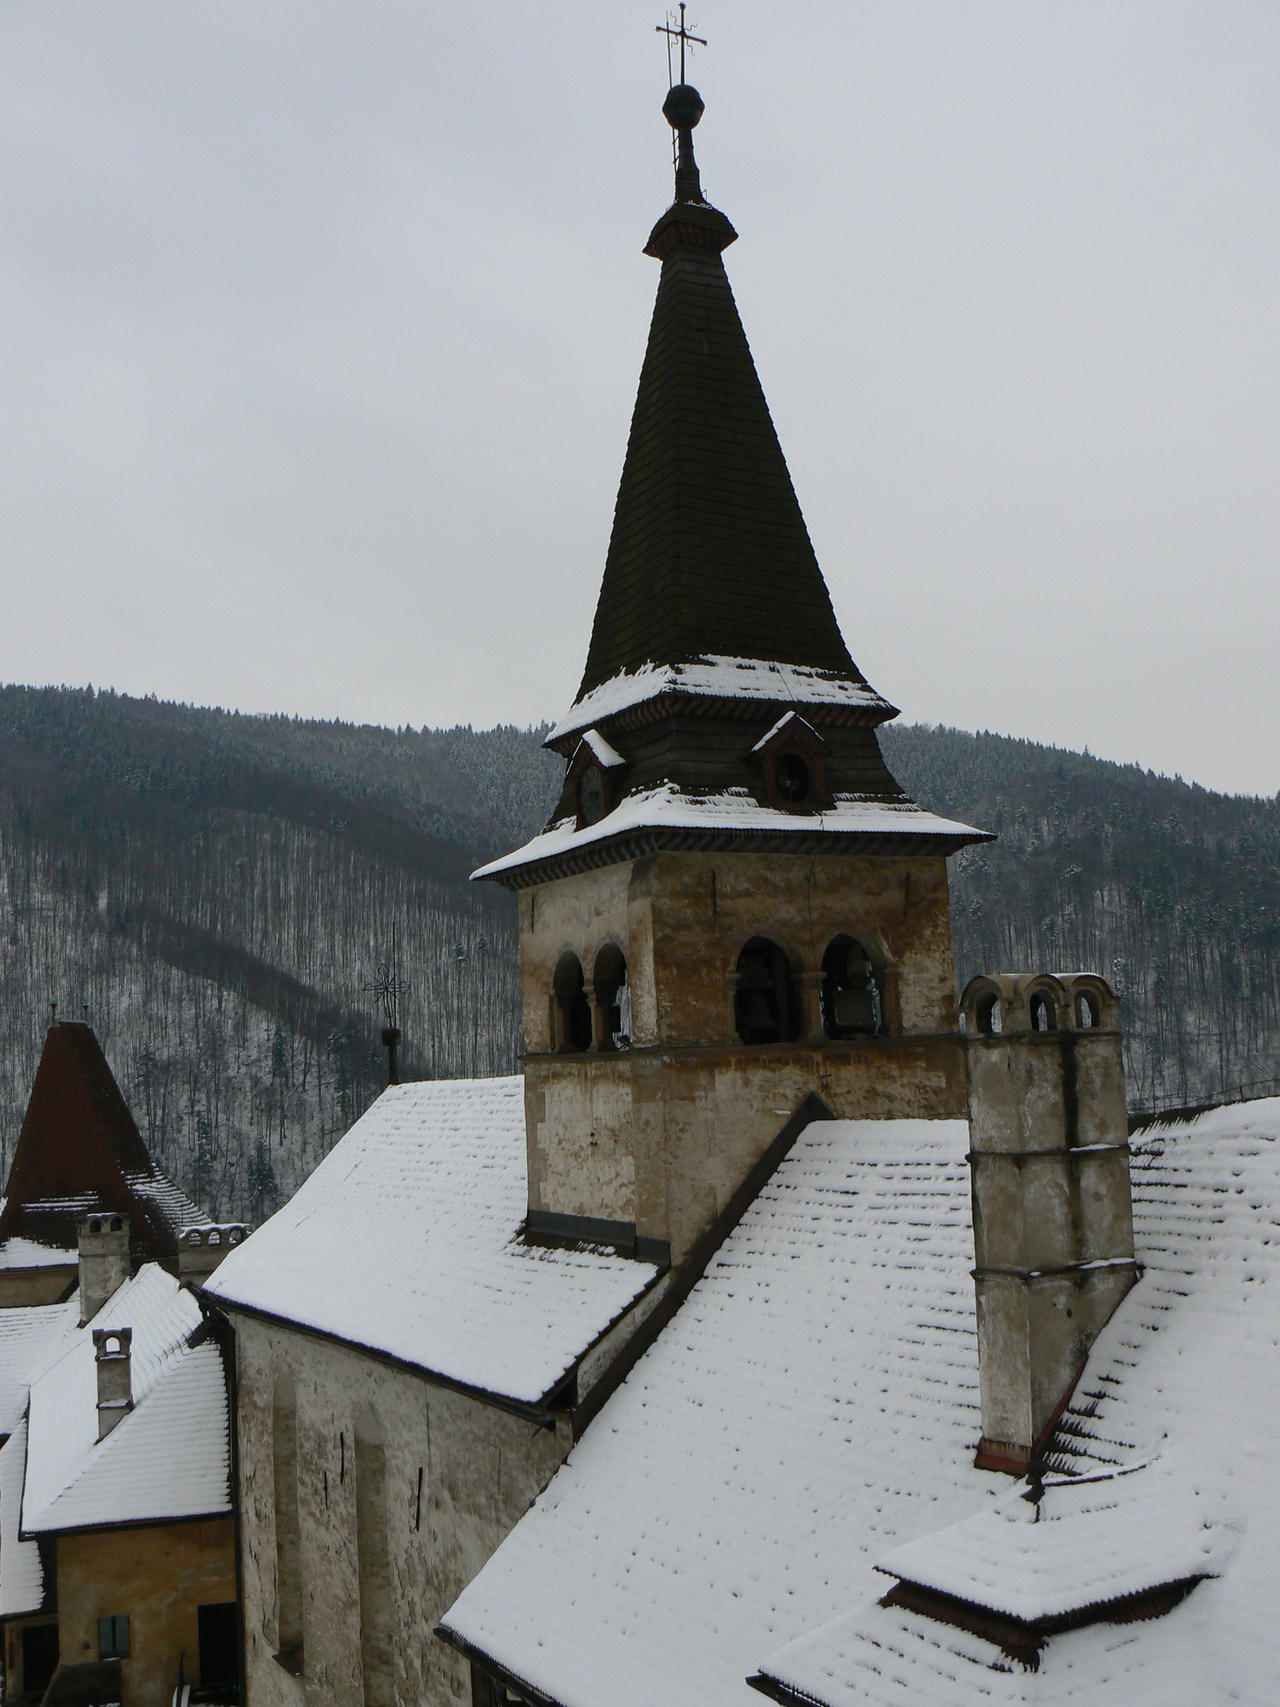 One church at Orava by nwinder